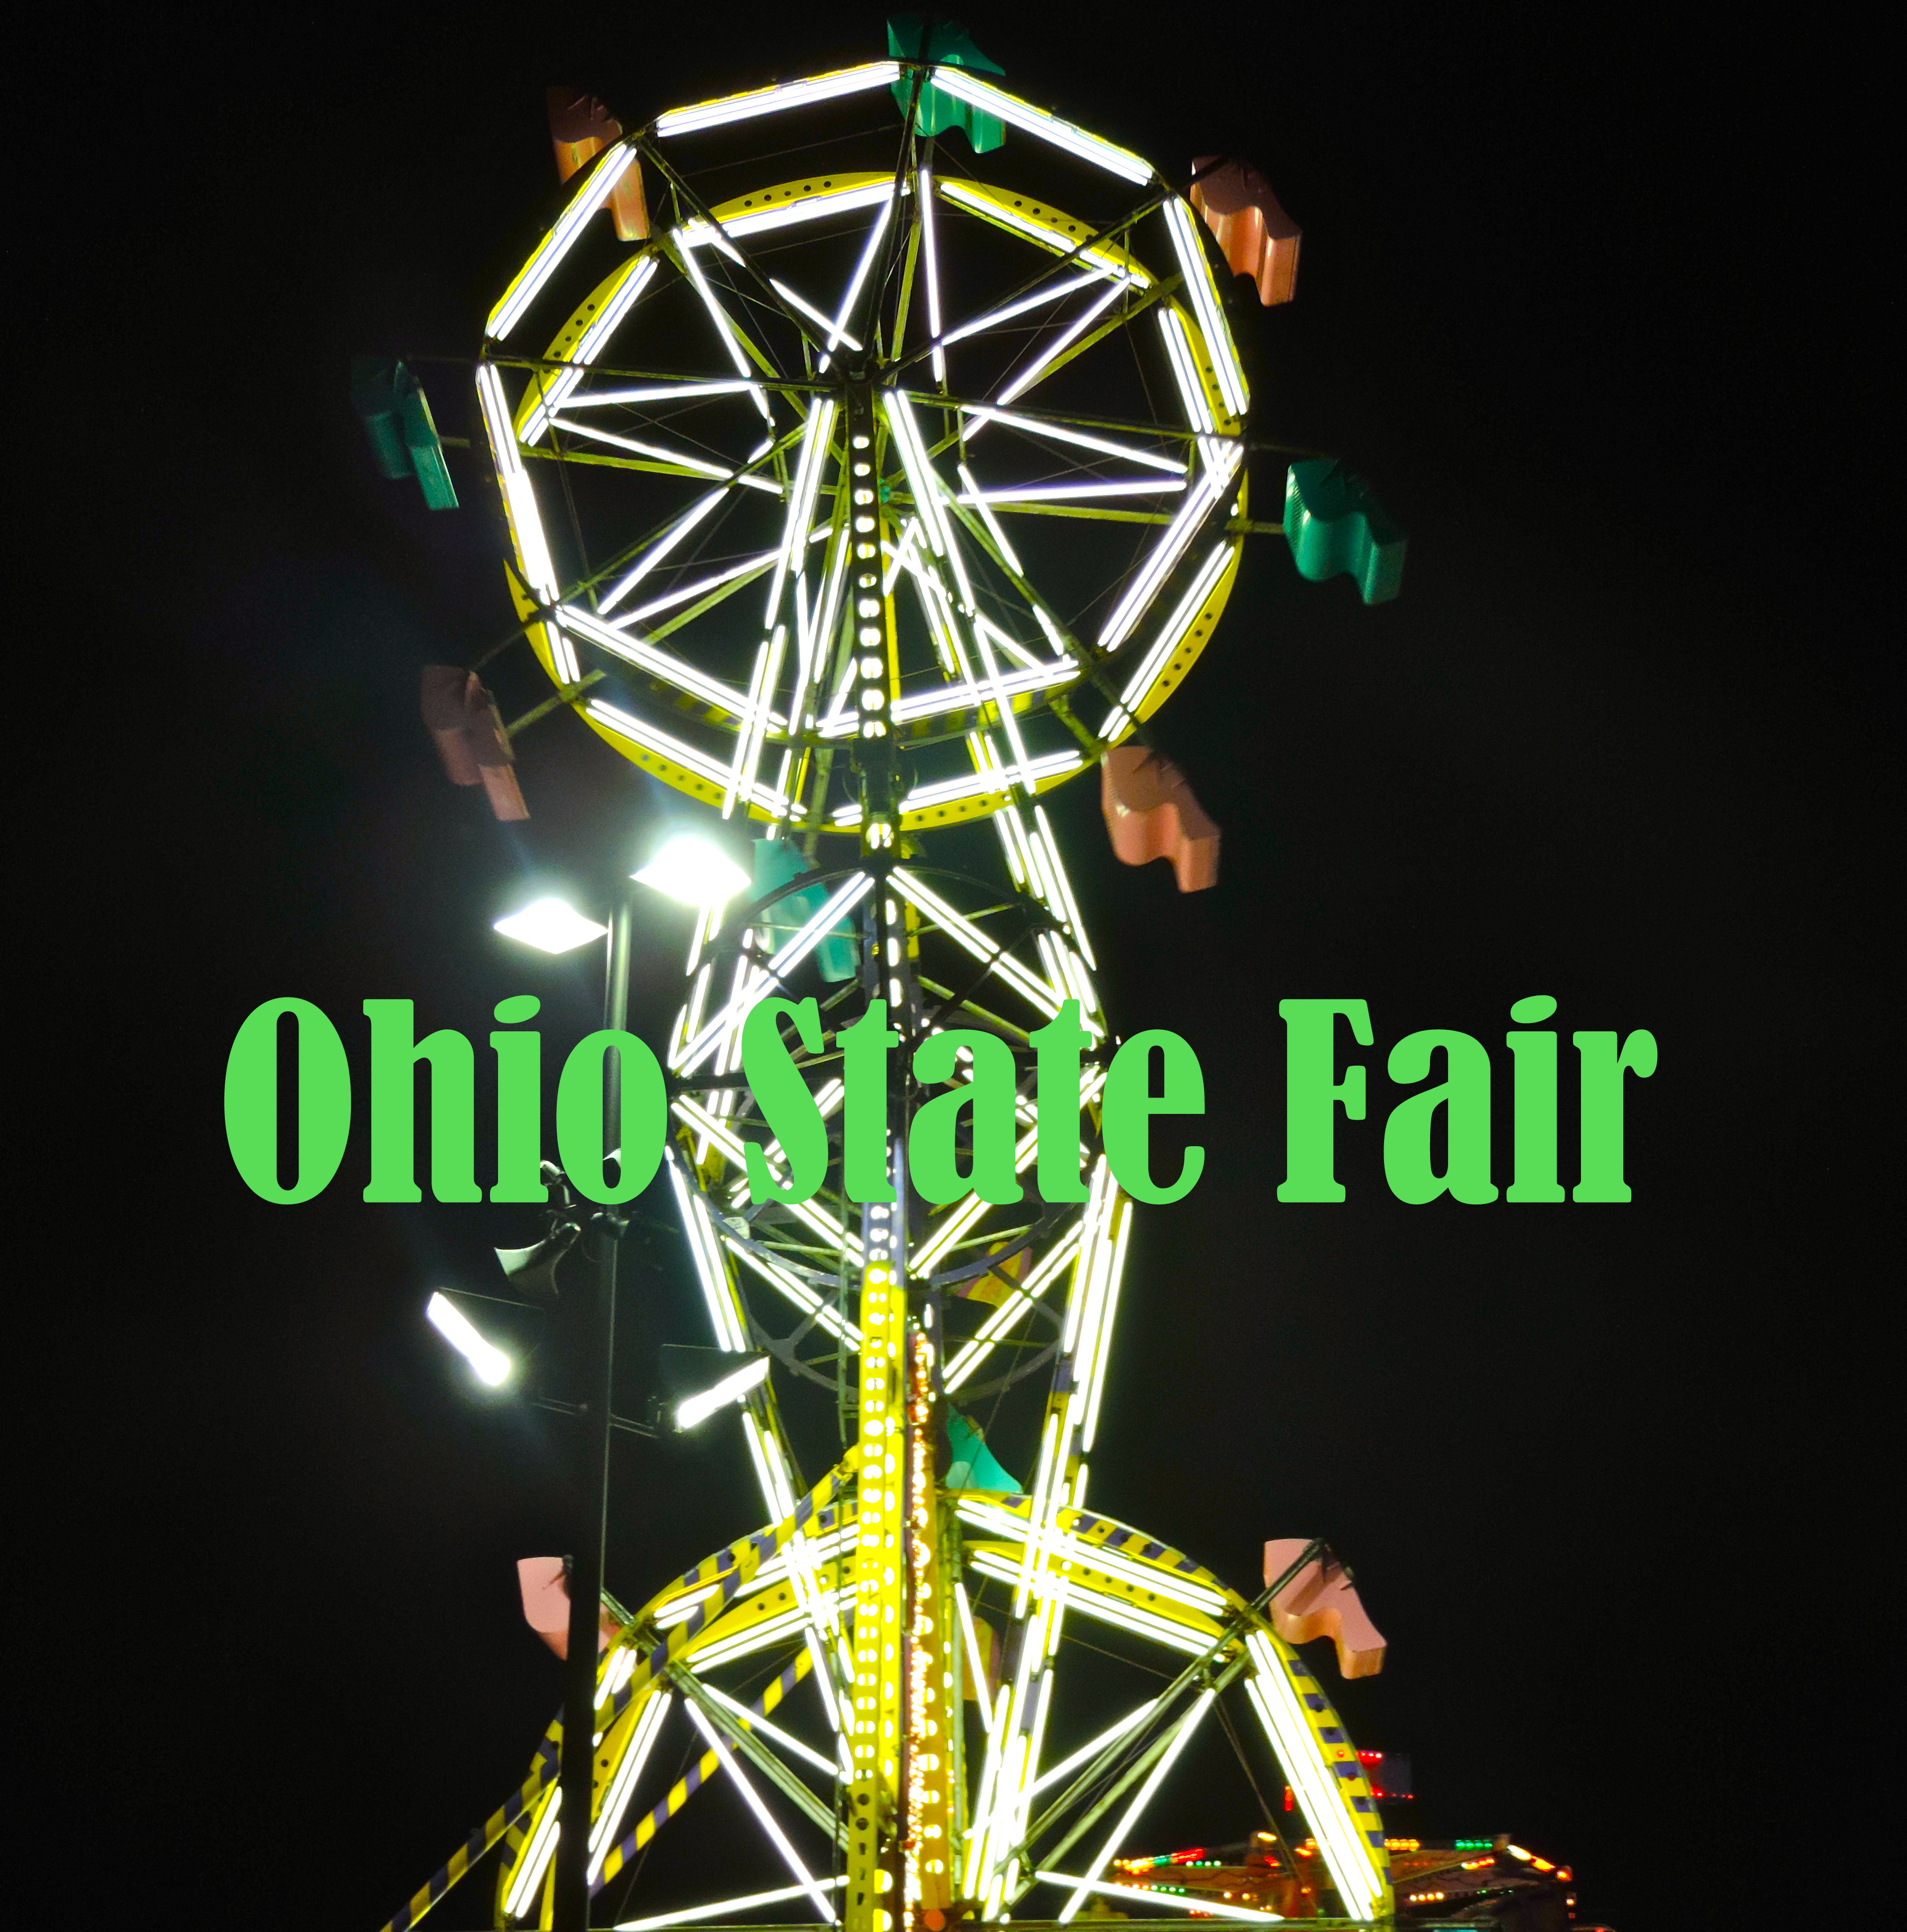 Ohio State Fair | Girl About Columbus